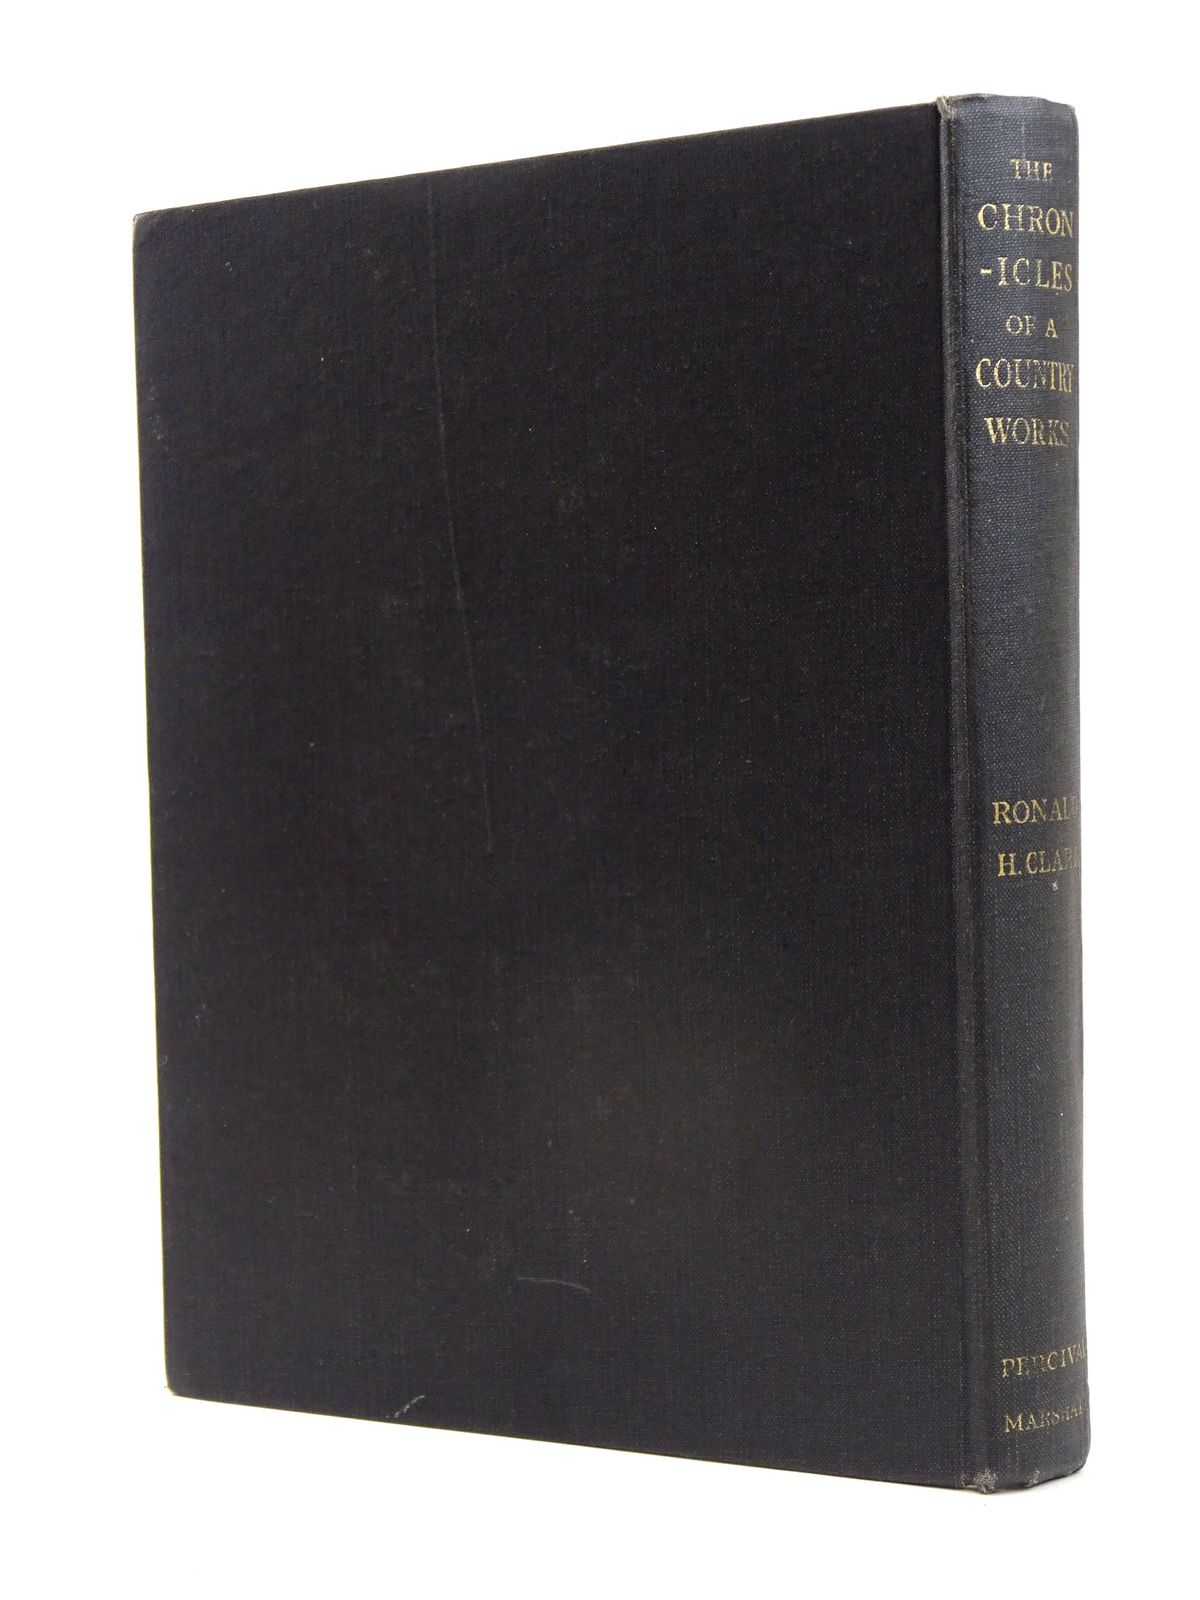 Photo of CHRONICLES OF A COUNTRY WORKS written by Clark, Ronald H. published by Percival Marshall (STOCK CODE: 1818622)  for sale by Stella & Rose's Books